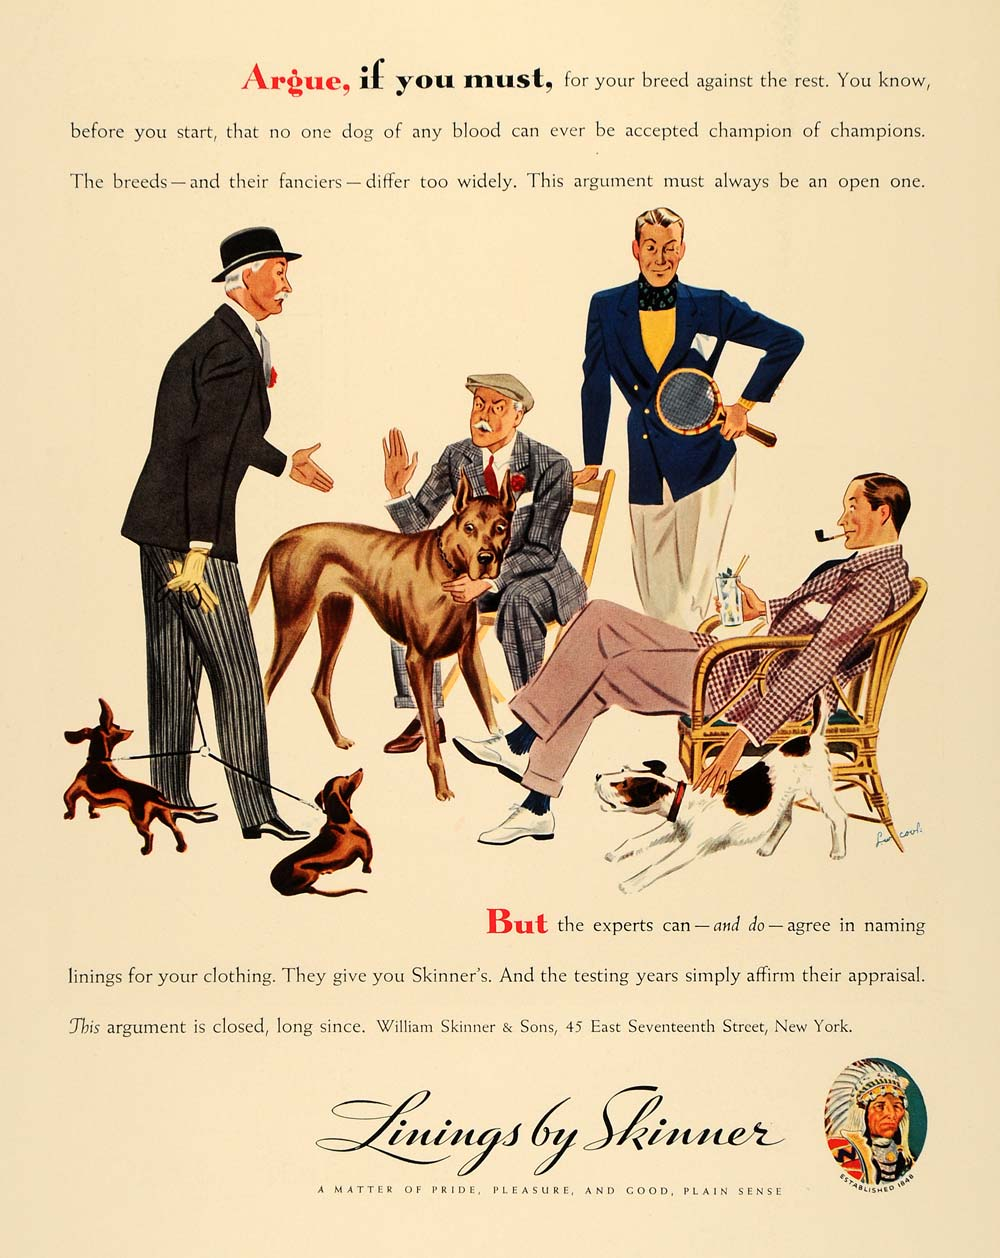 1935 Ad Clothing Lining William Skinner Dogs Breed Sons - ORIGINAL F3A